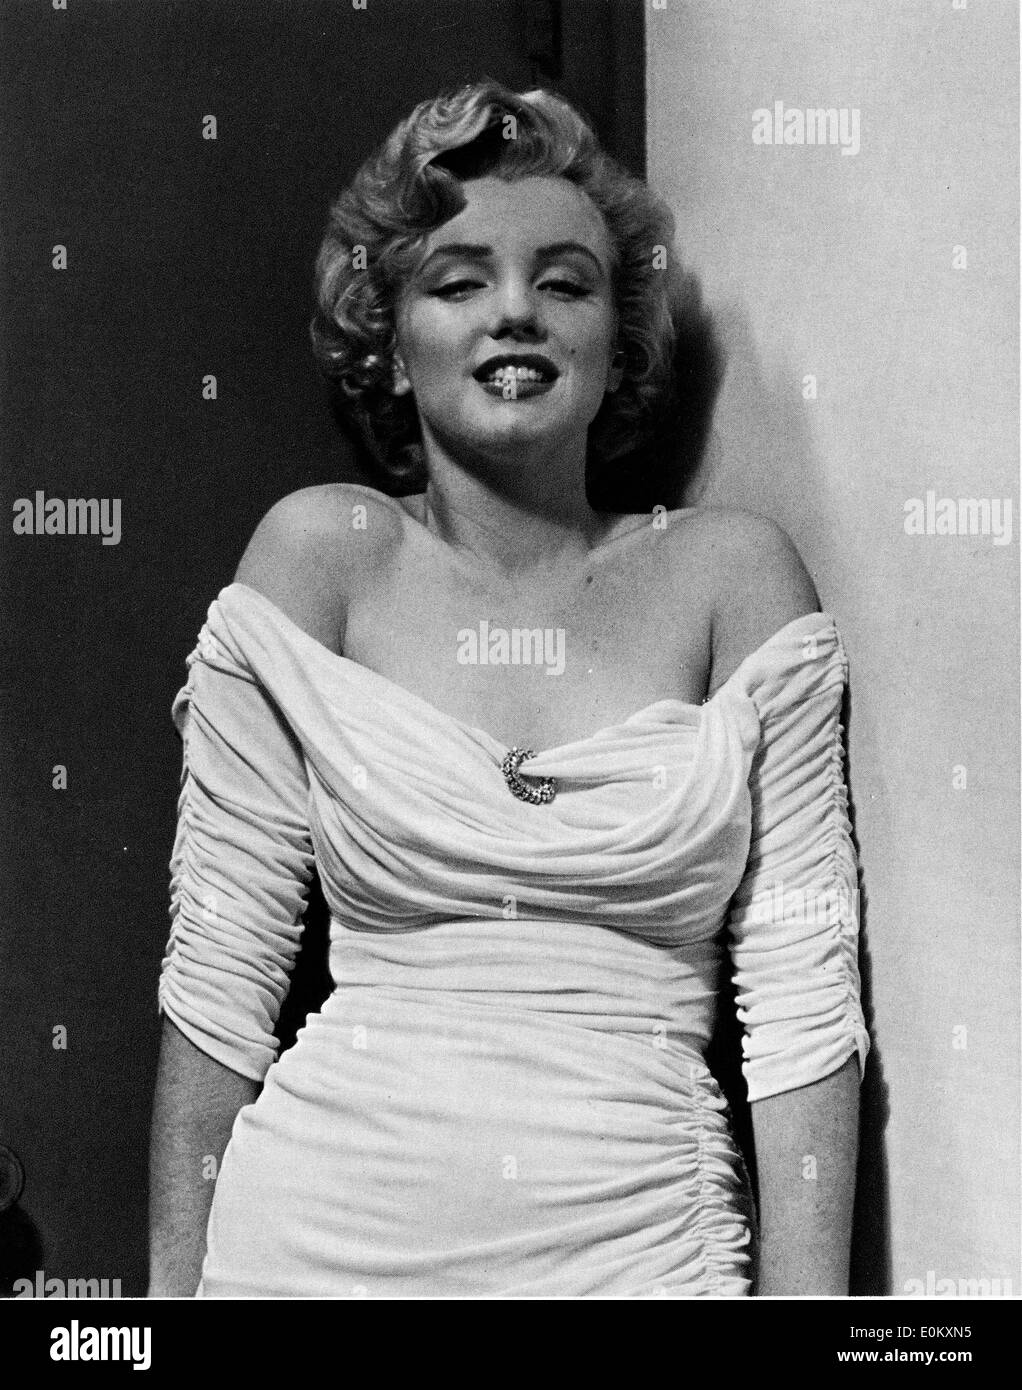 Starlet Marilyn Monroe posing for Parade magazine - Stock Image